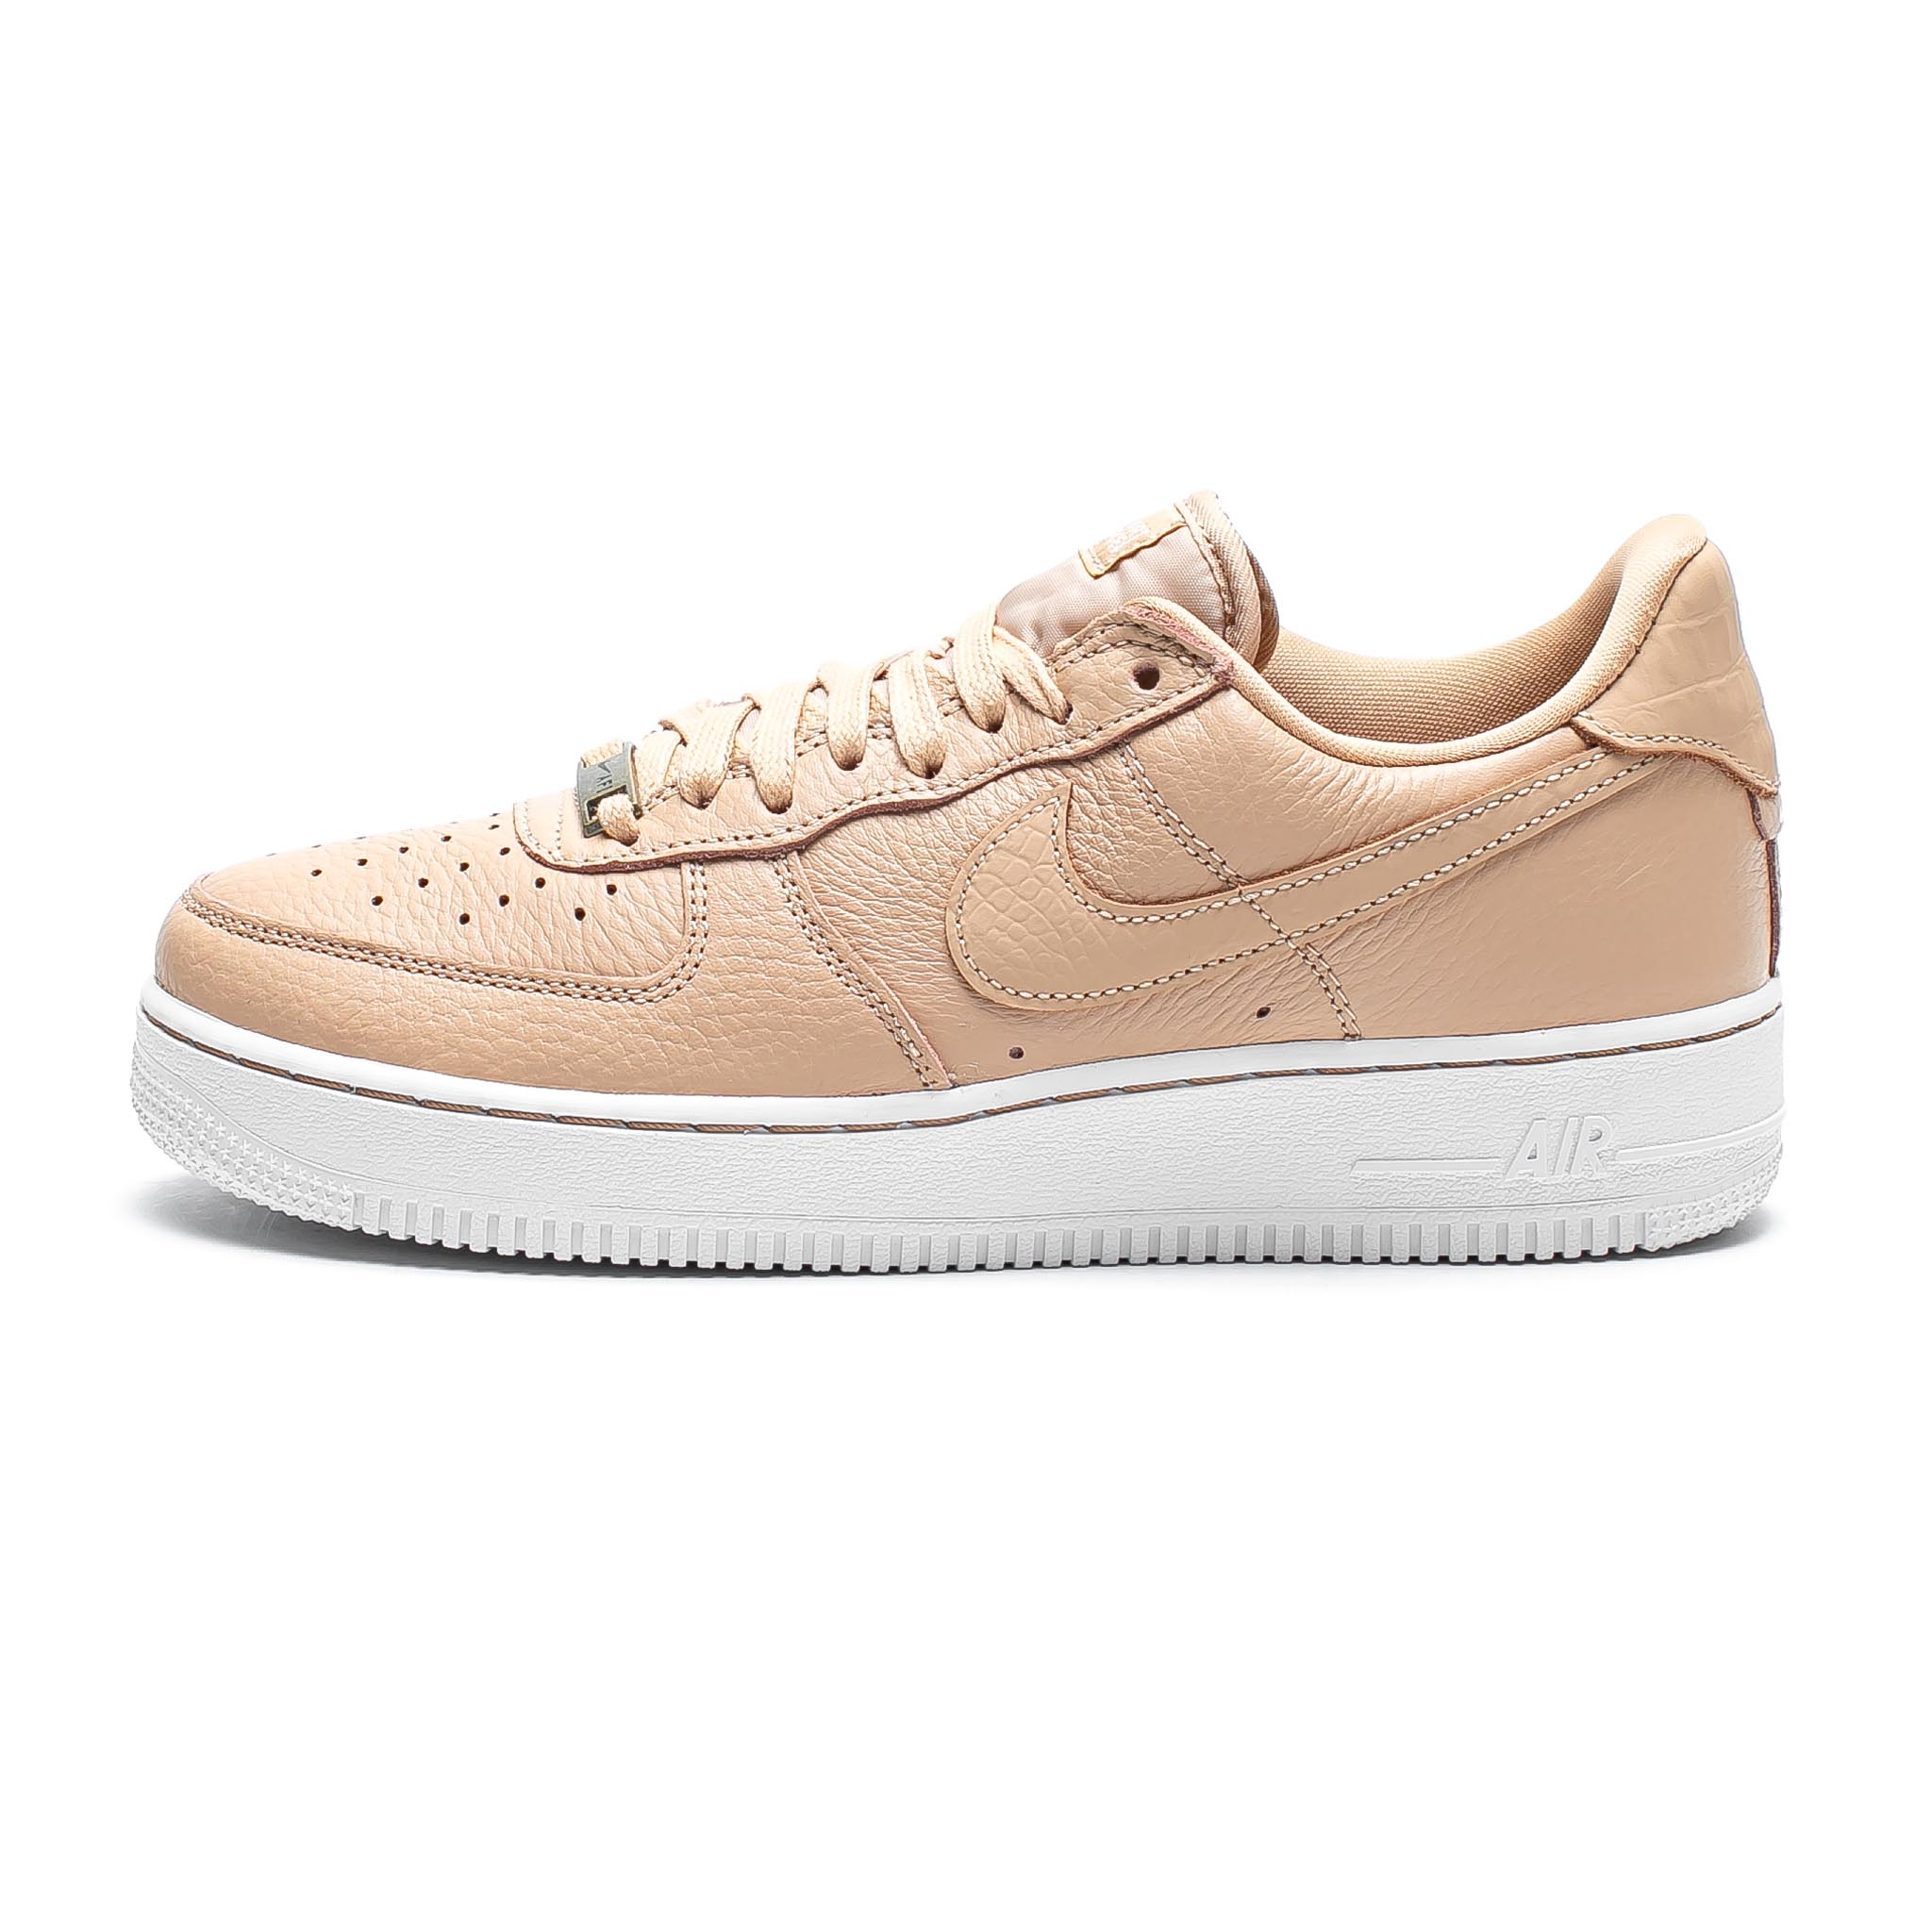 Nike Air Force 1 Craft 'Vachetta Tan Croc'